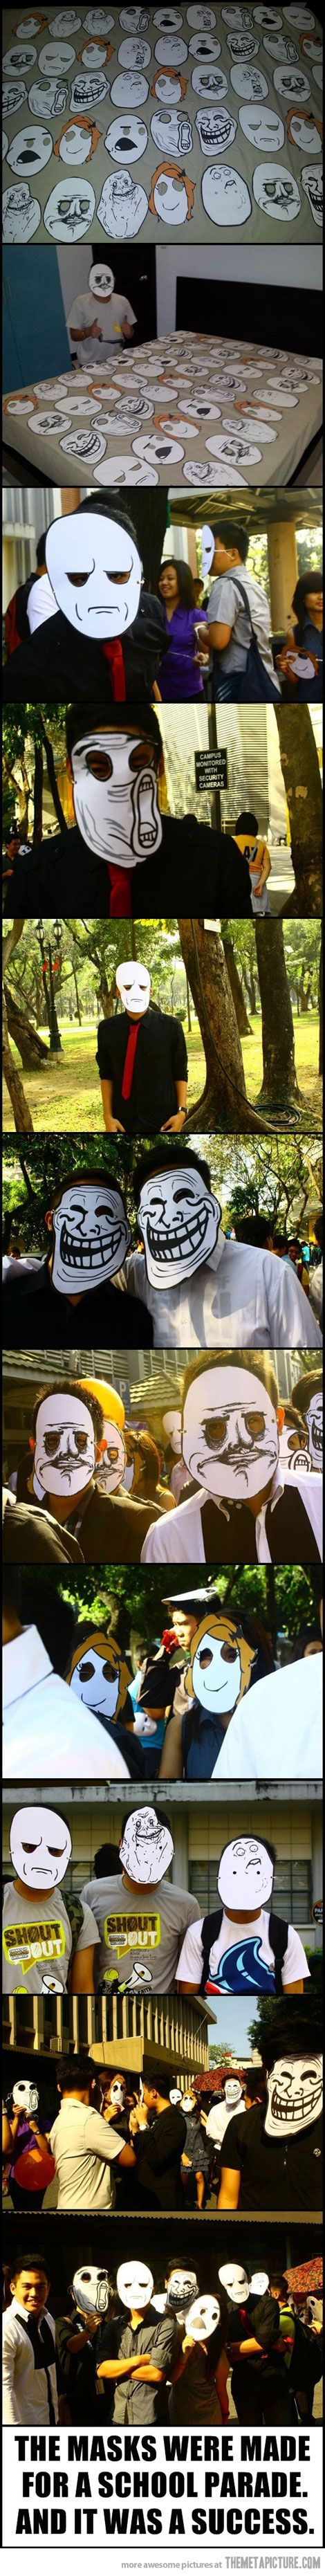 Rage face parade. This needs to be done.